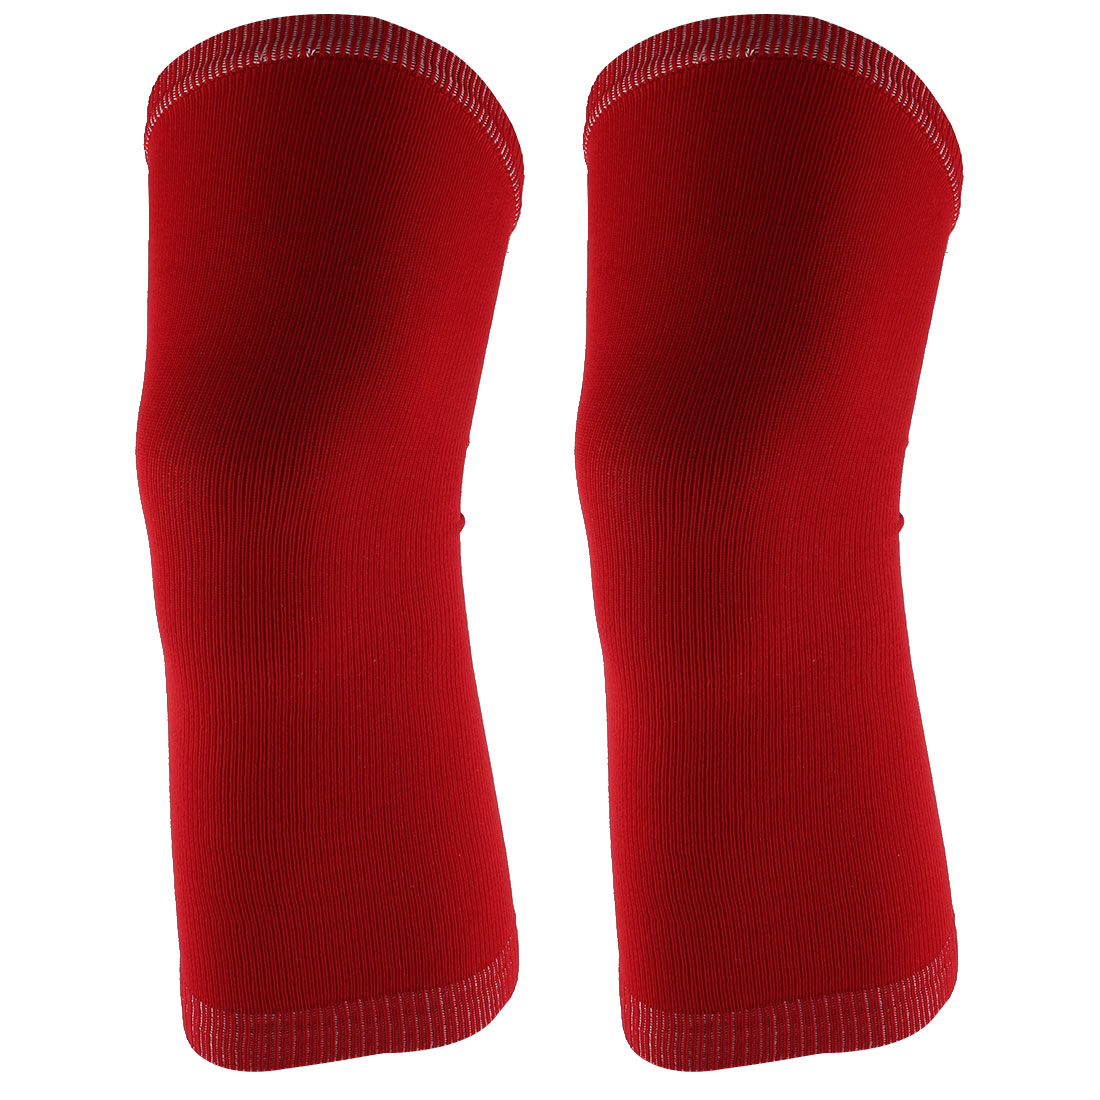 Outdoor Sports Gym Elastic Sleeve Knee Muscle Protector Support Brace Guard Red 2pcs